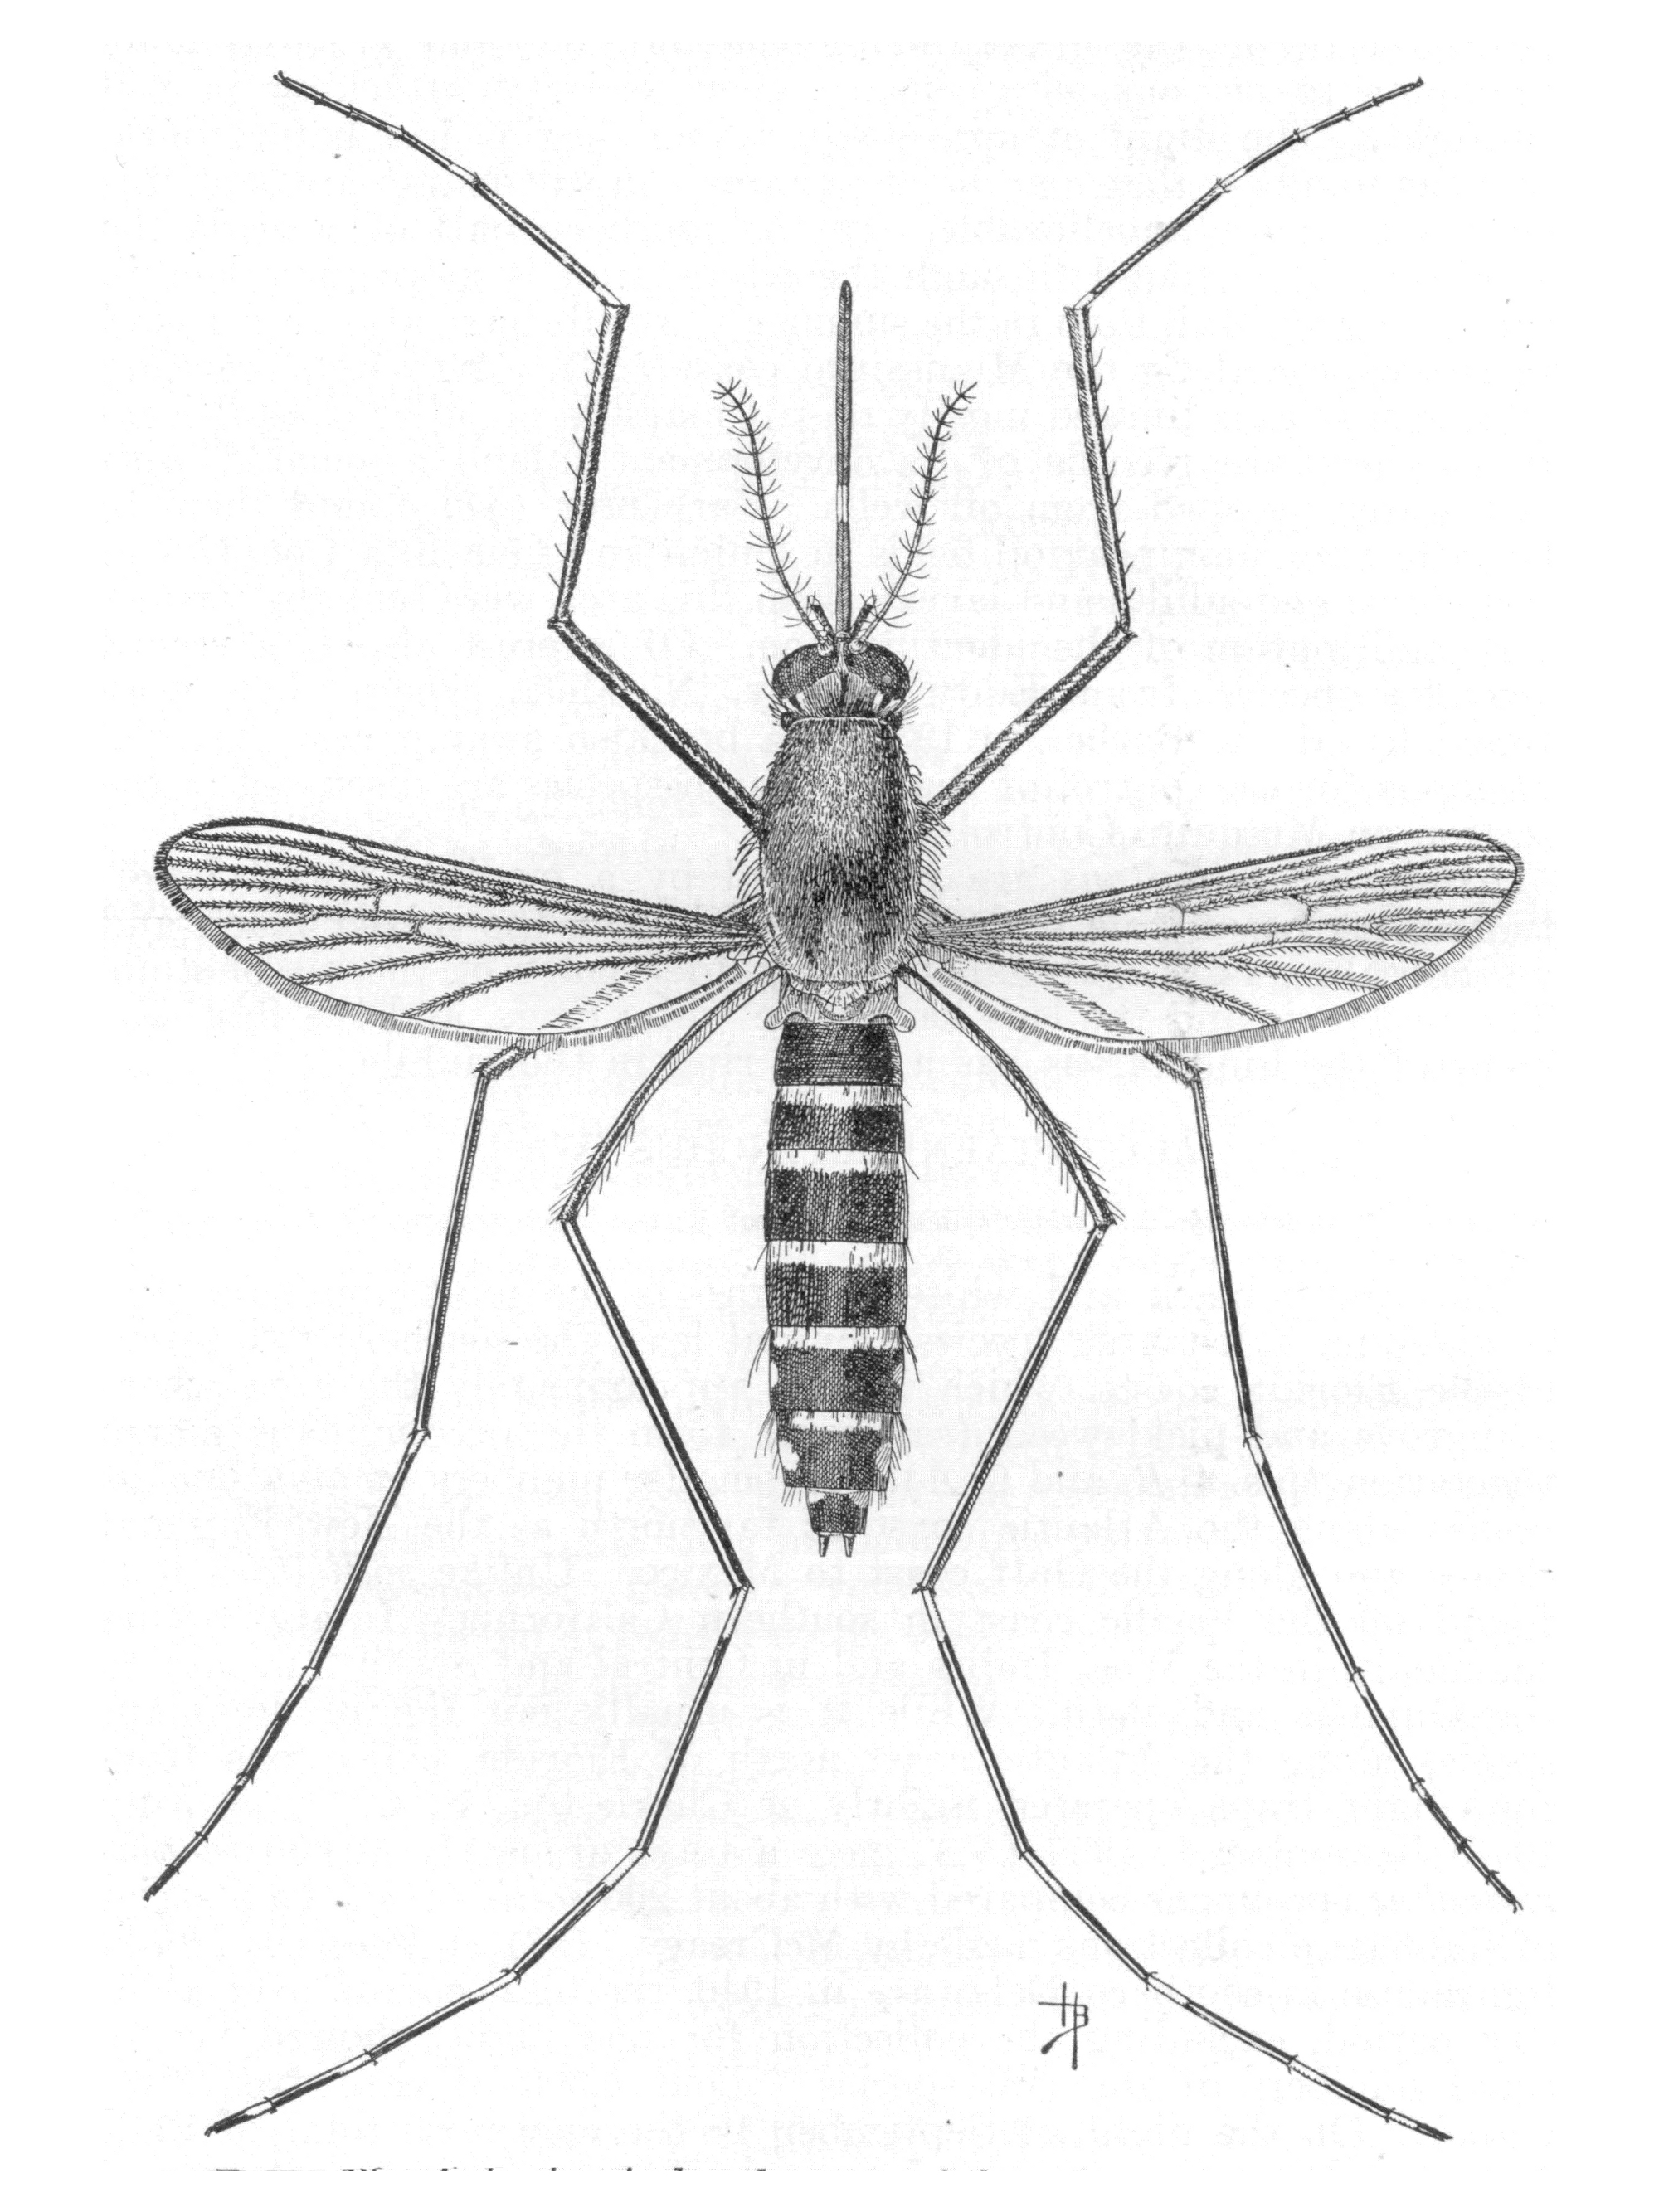 Anopheles mosquito drawing - photo#16